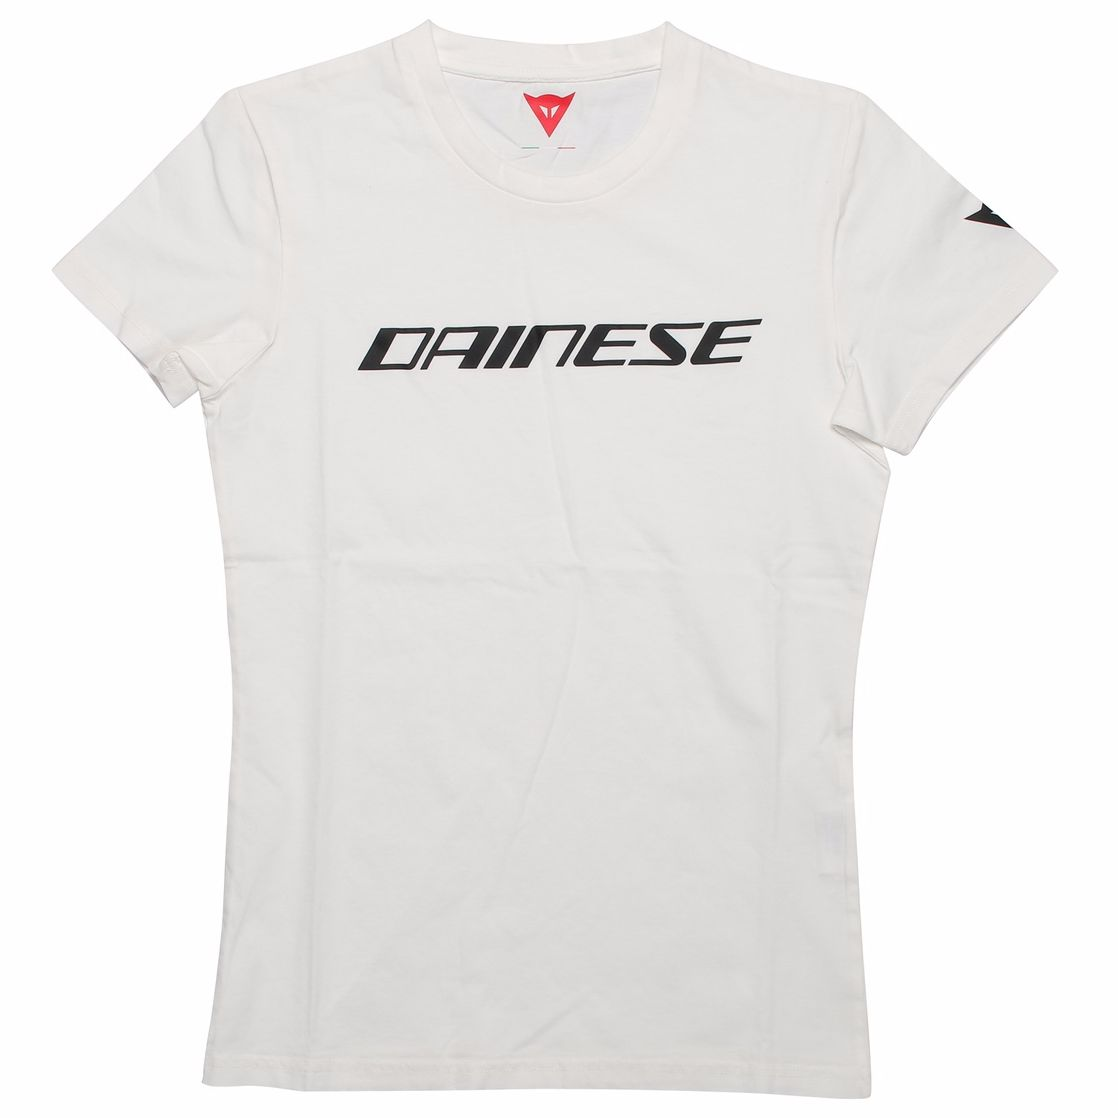 t shirt manches courtes dainese dainese lady sportswear et accessoires. Black Bedroom Furniture Sets. Home Design Ideas